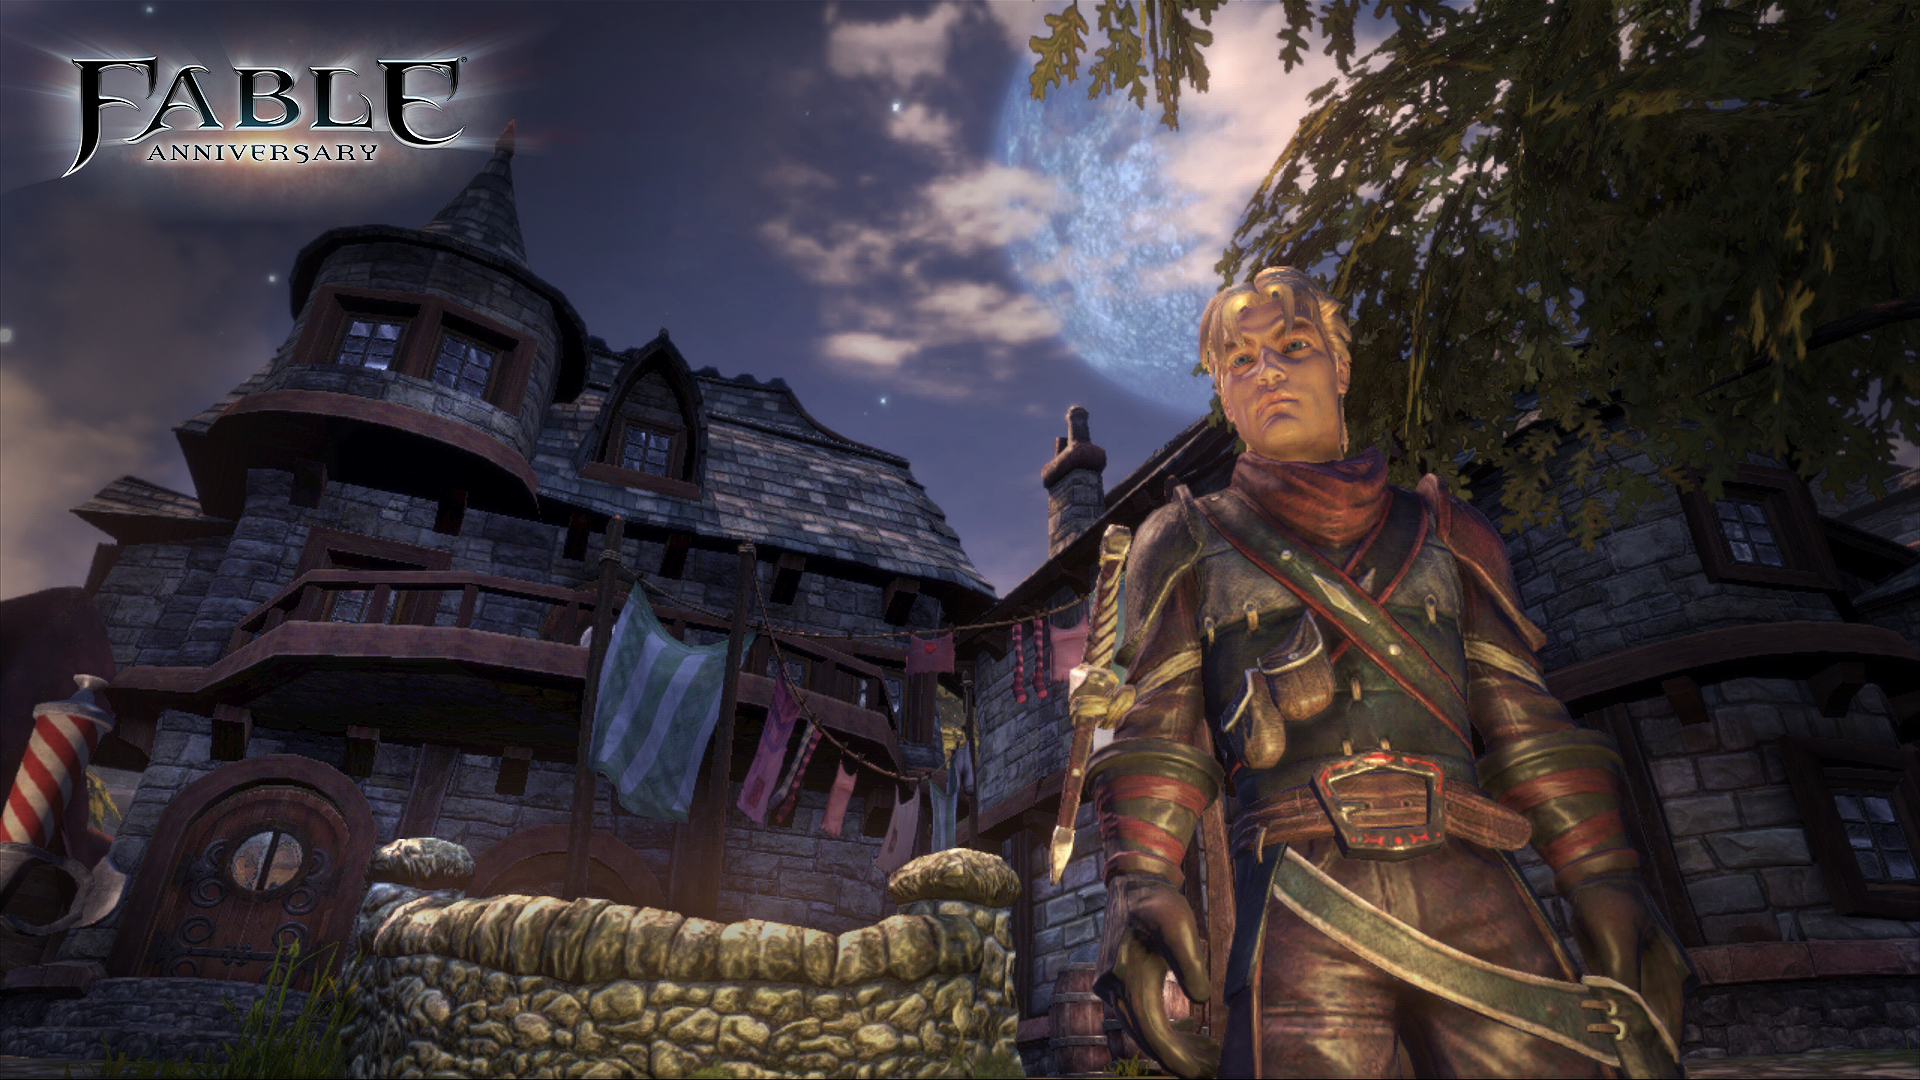 fable cheats fuer xbox: